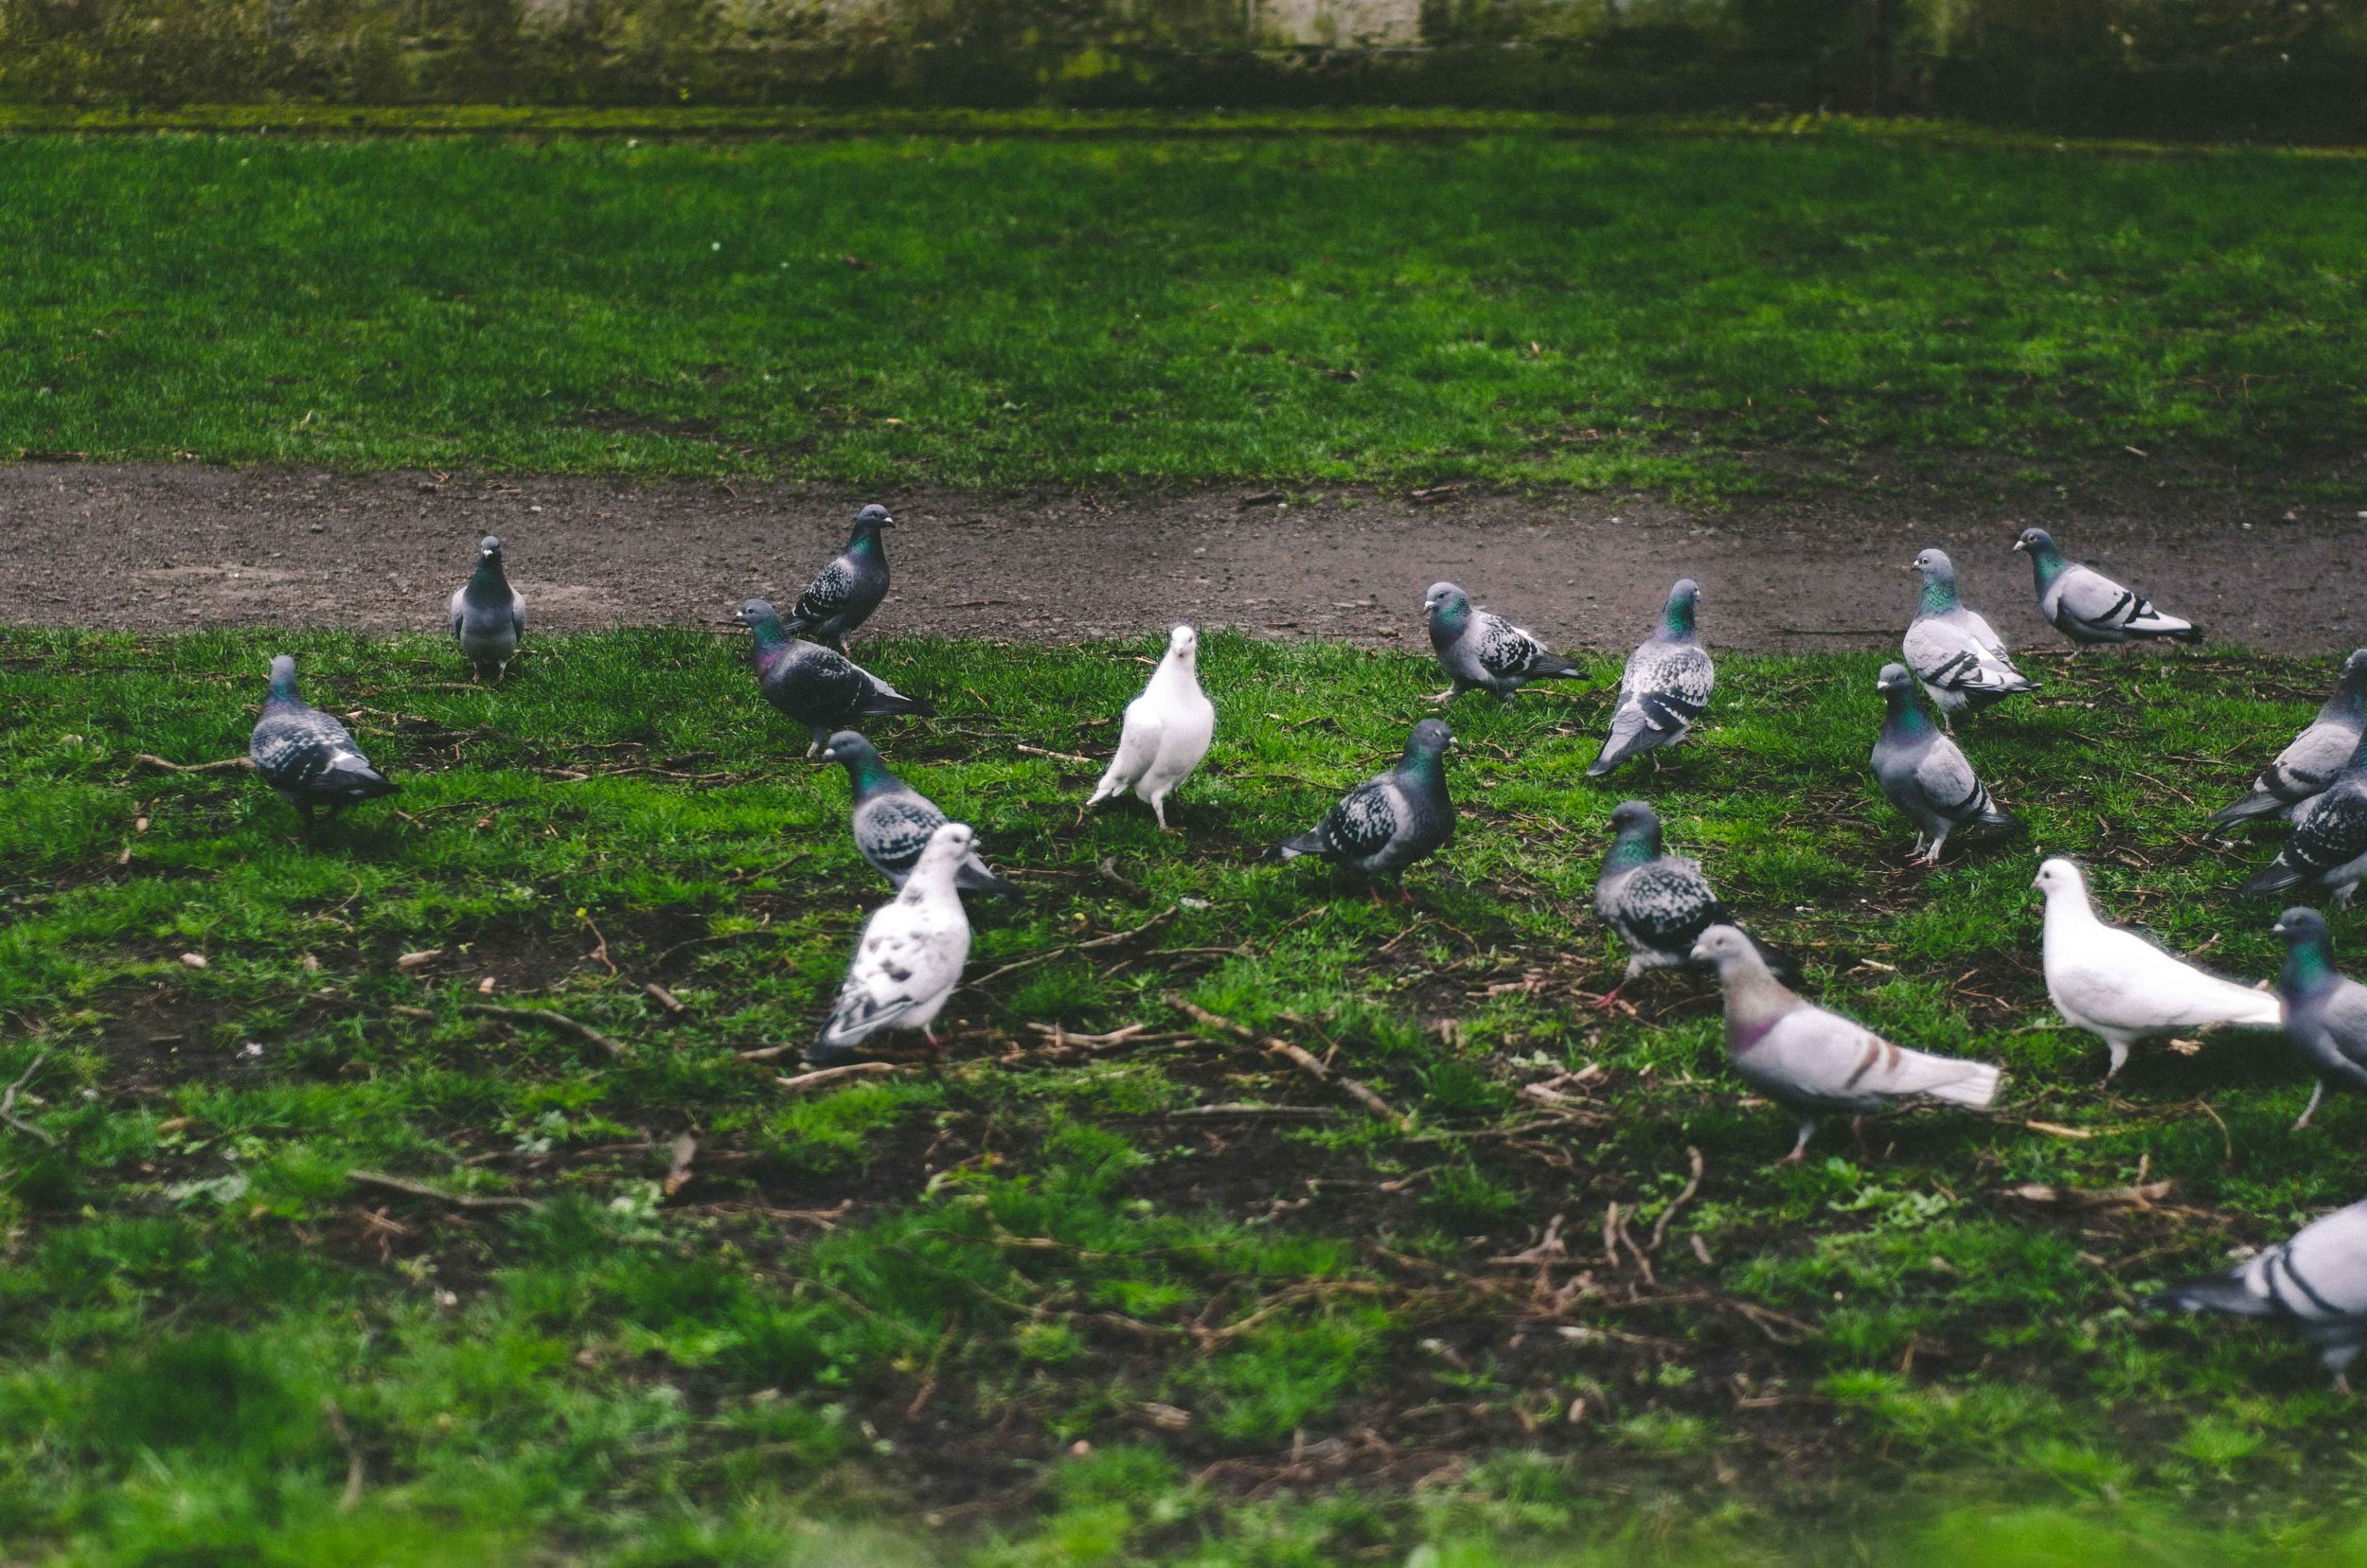 Pigeon collective on the church lawn